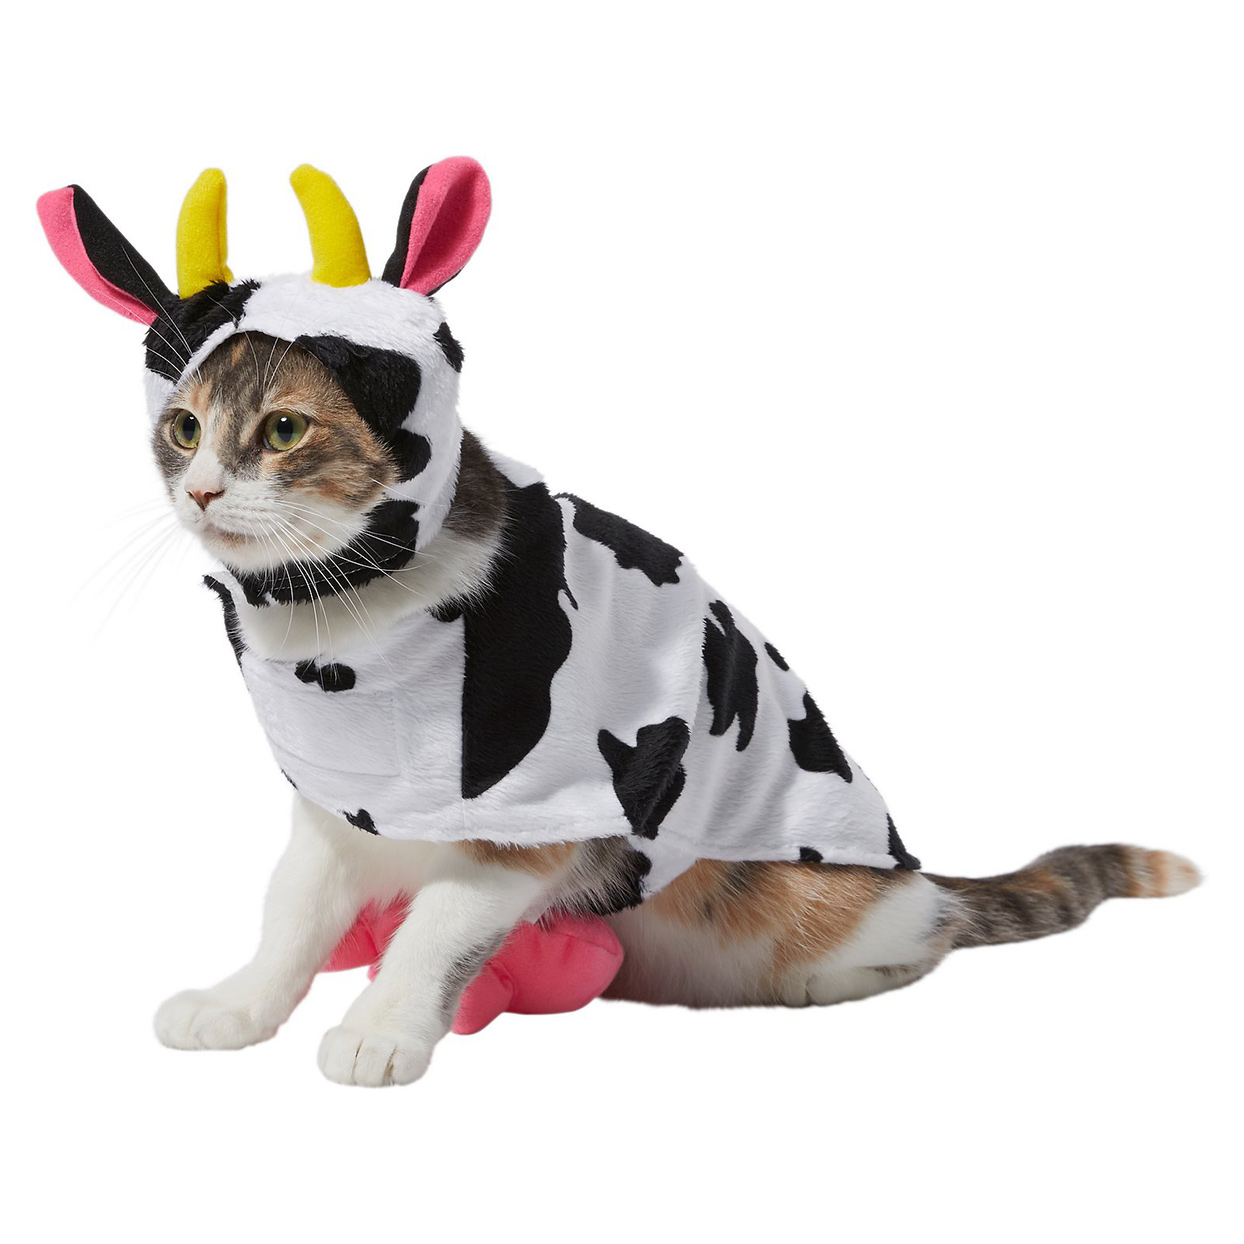 Cat wearing a Frisco Happy Cow Dog & Cat Costume on a white background